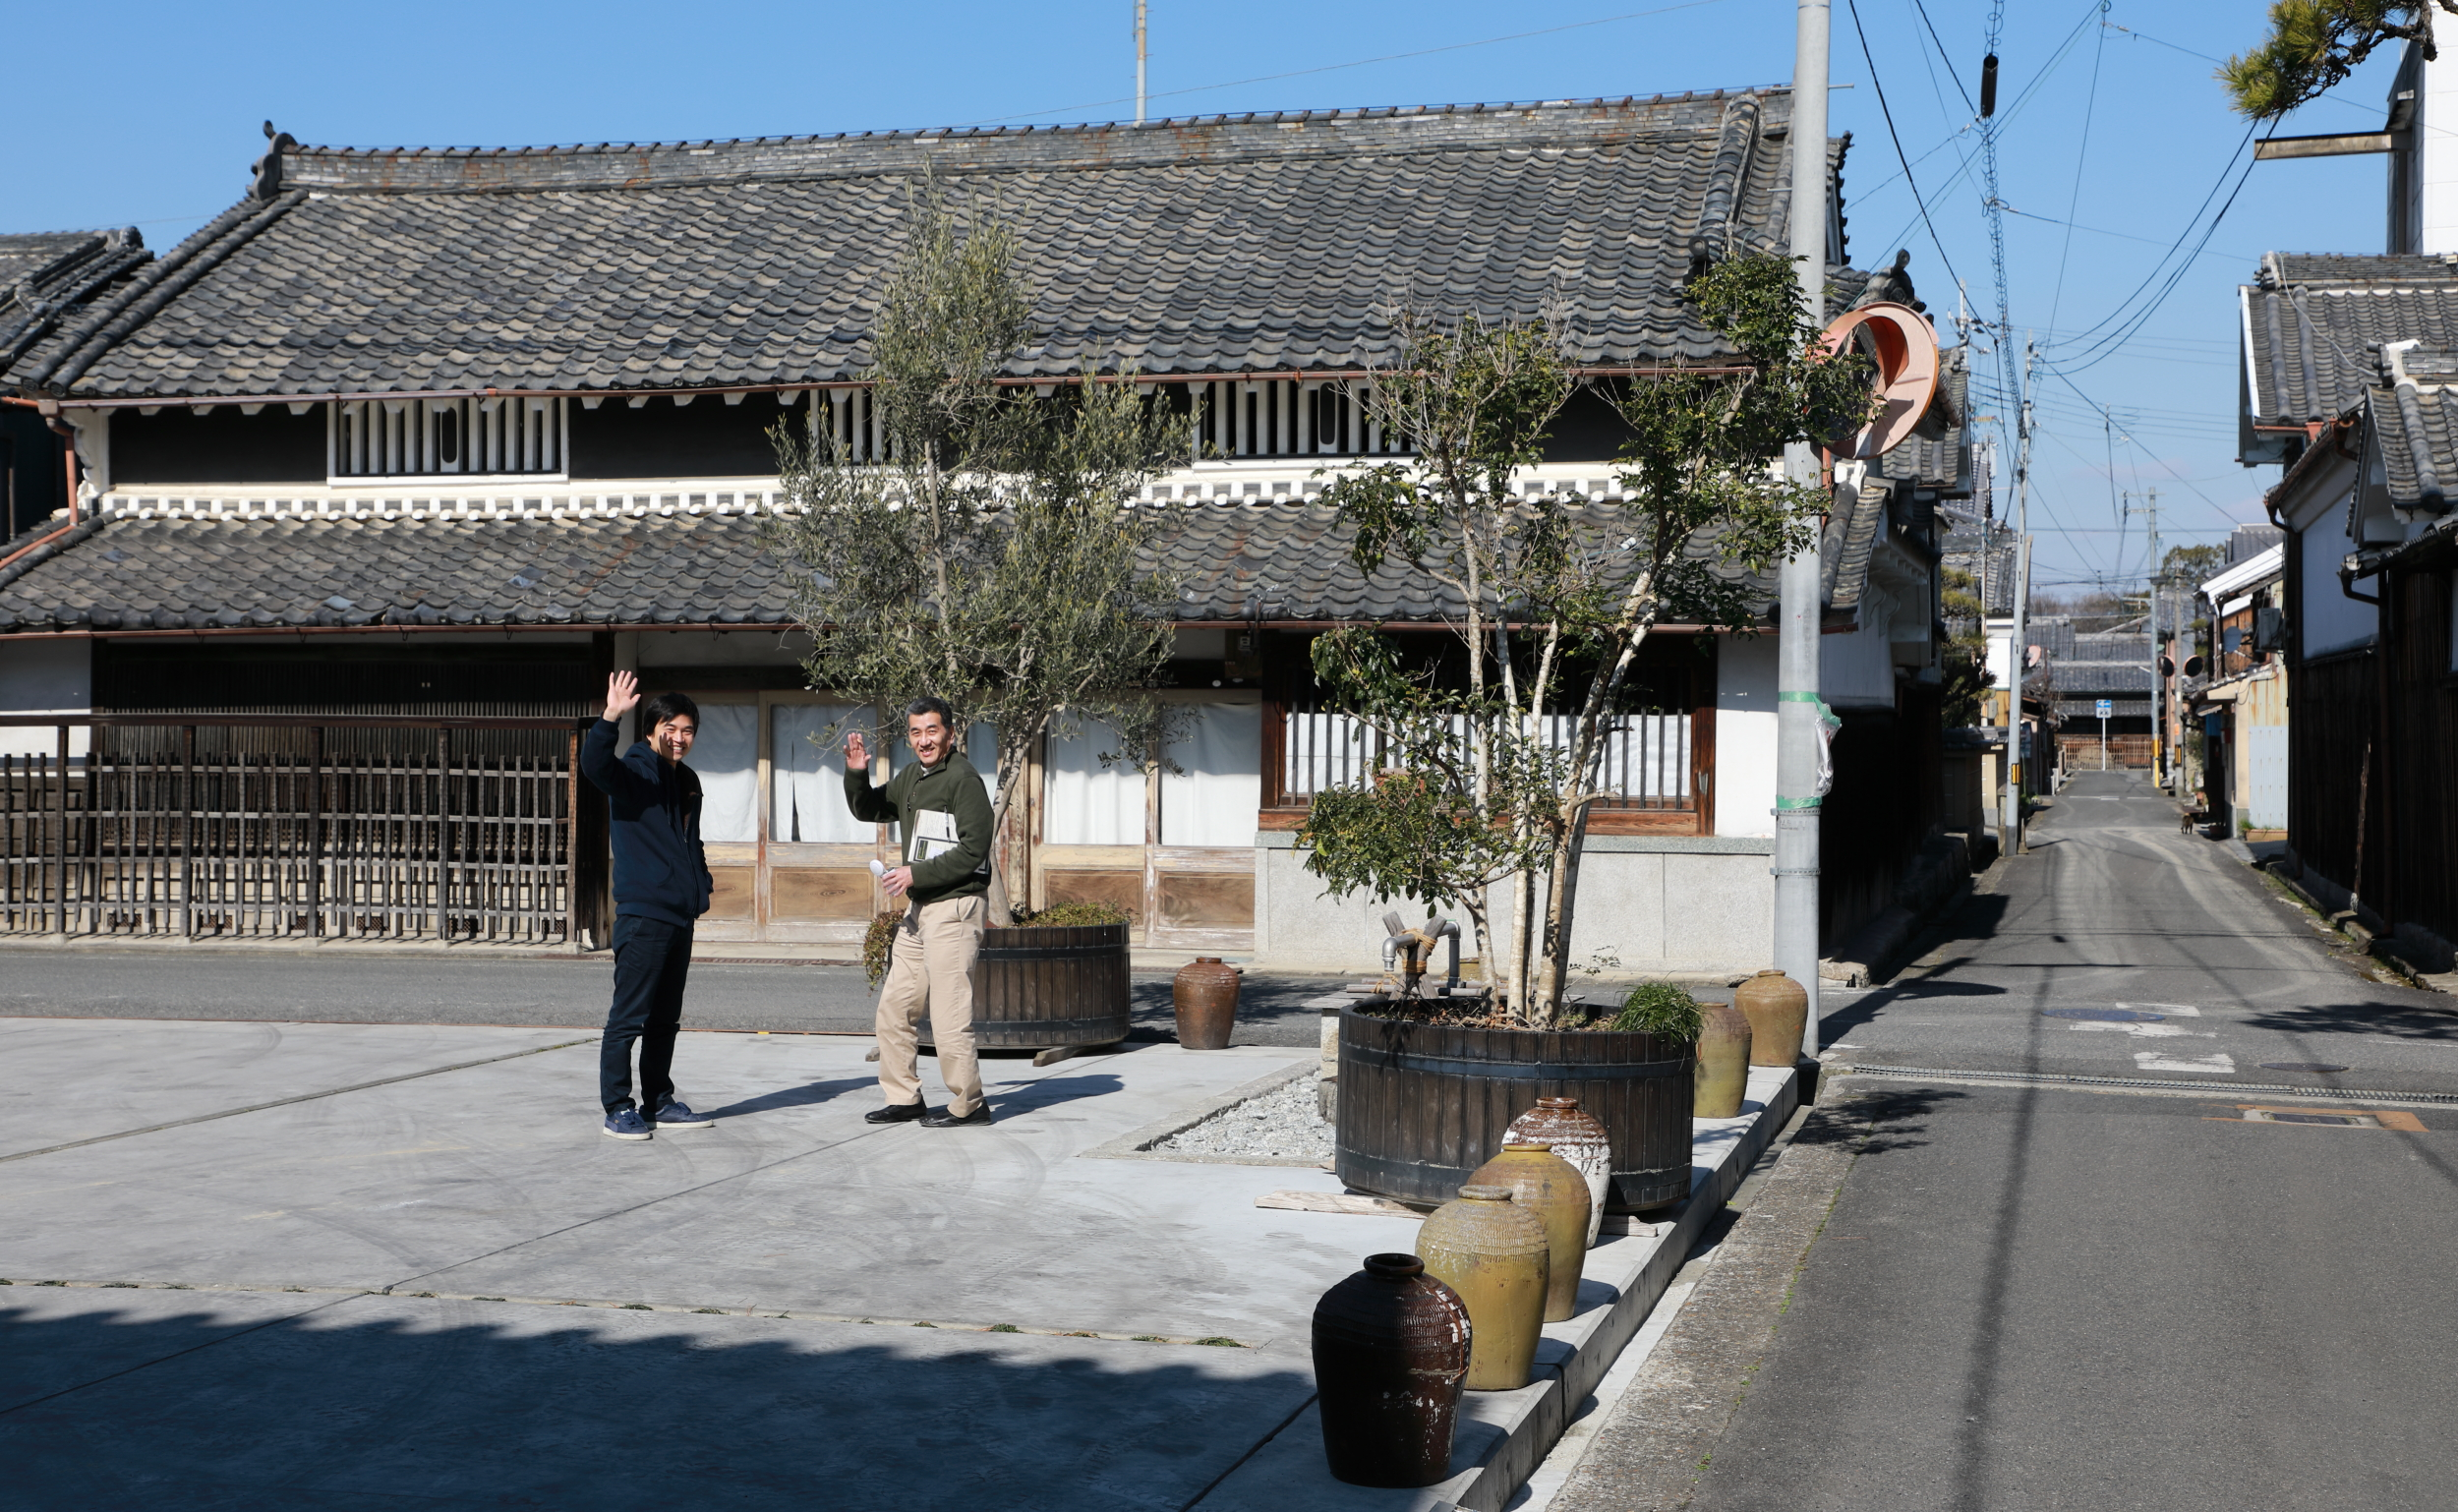 Many of Gose's buildings exhibit the handsome combination of black tiled roofs and stuccoed walls, white trim, and wooden doors and lattice that are characteristic of old merchant architecture in Nara prefecture.